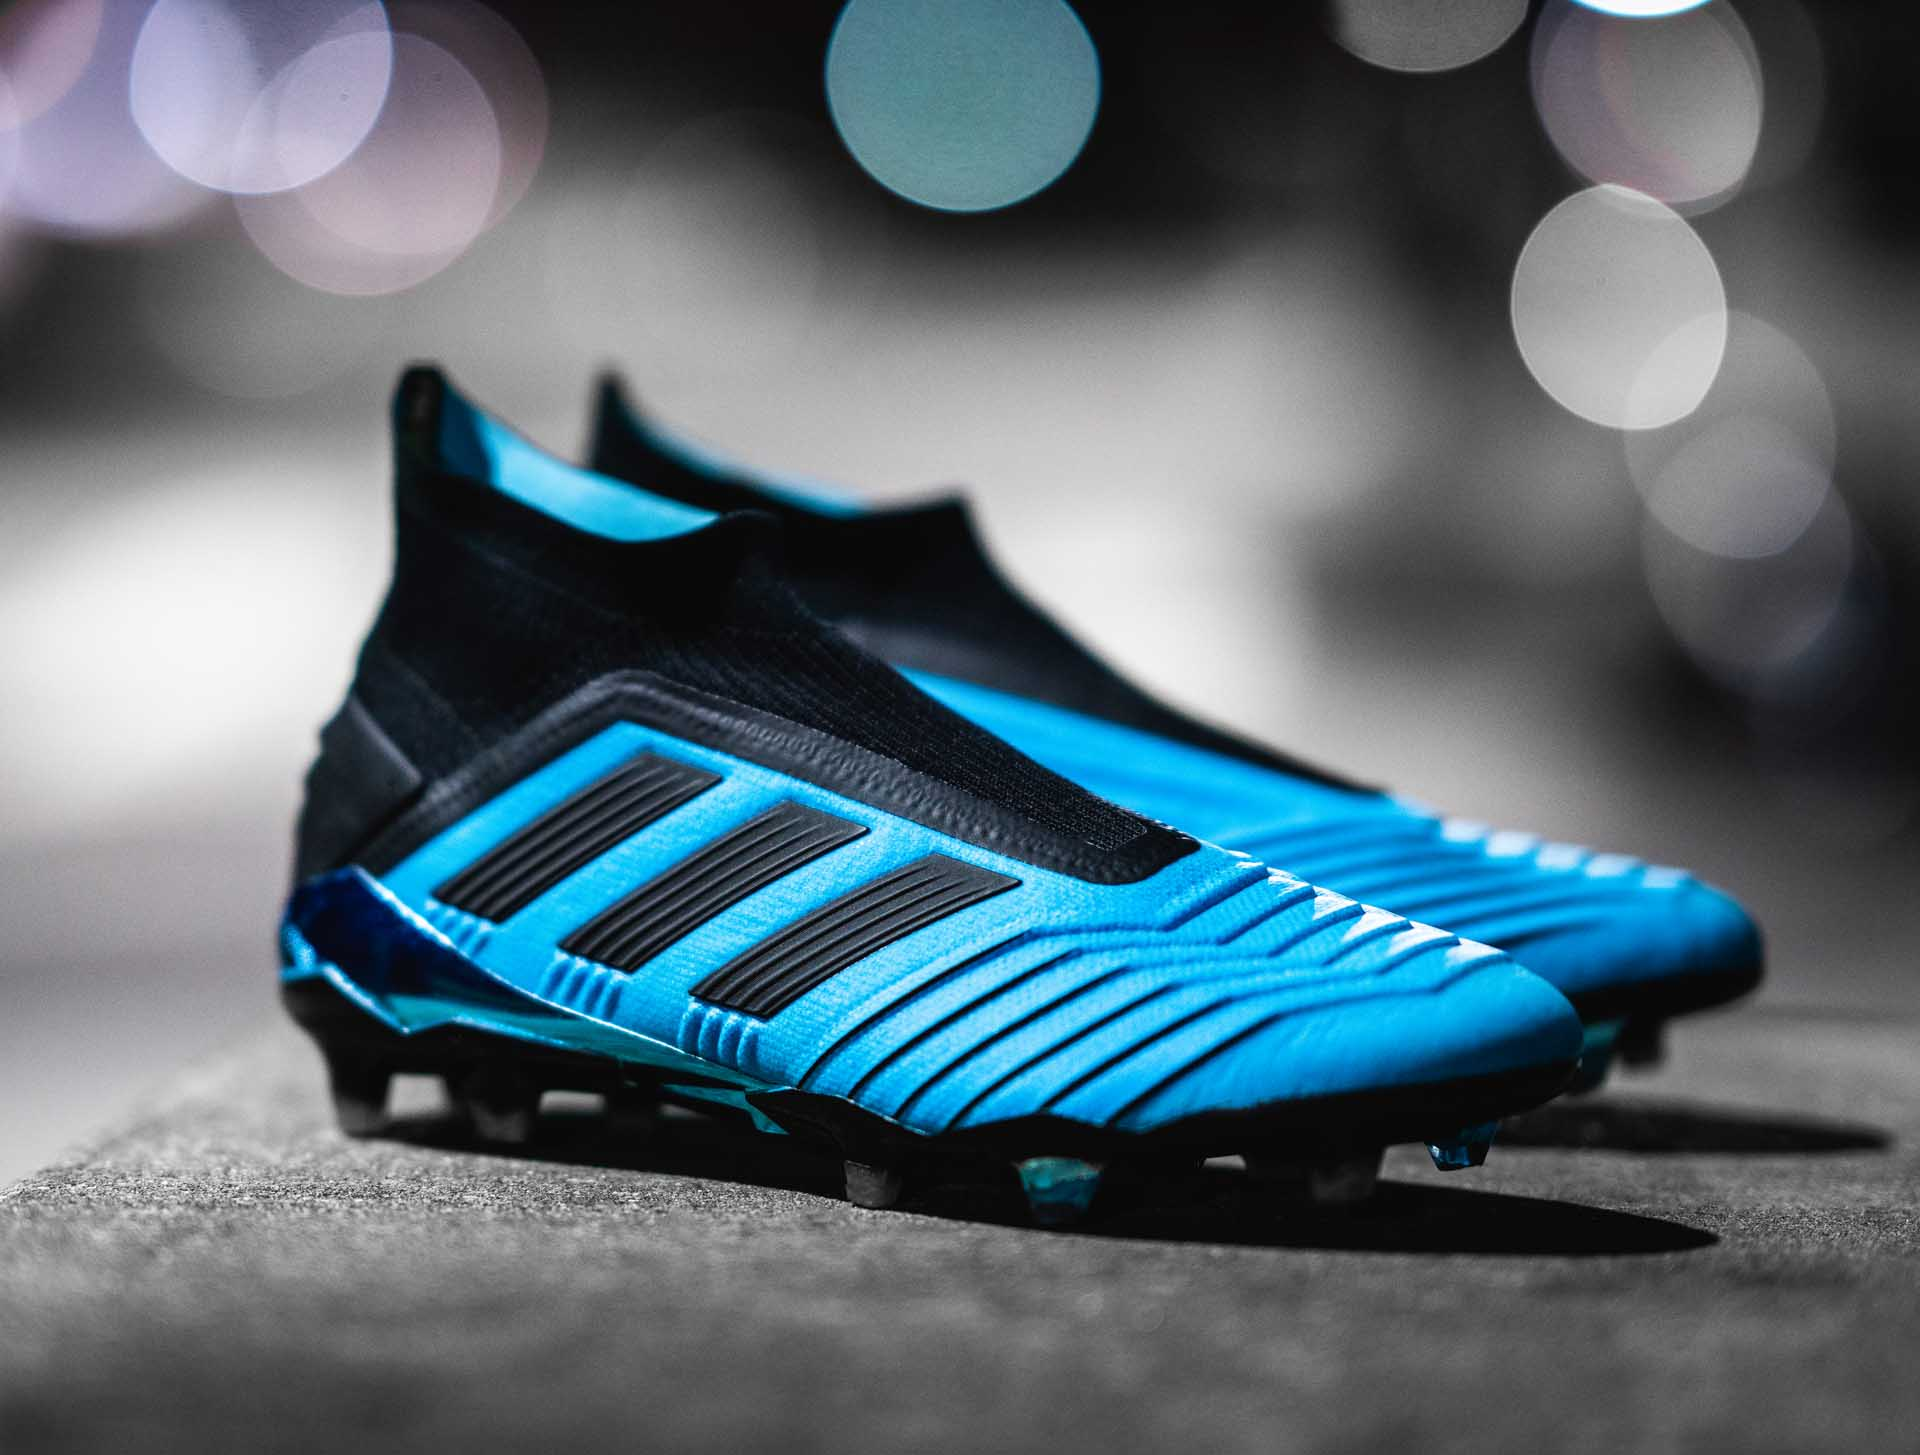 entregar Figura Verter  adidas Launch The 'Hardwired Pack' - SoccerBible